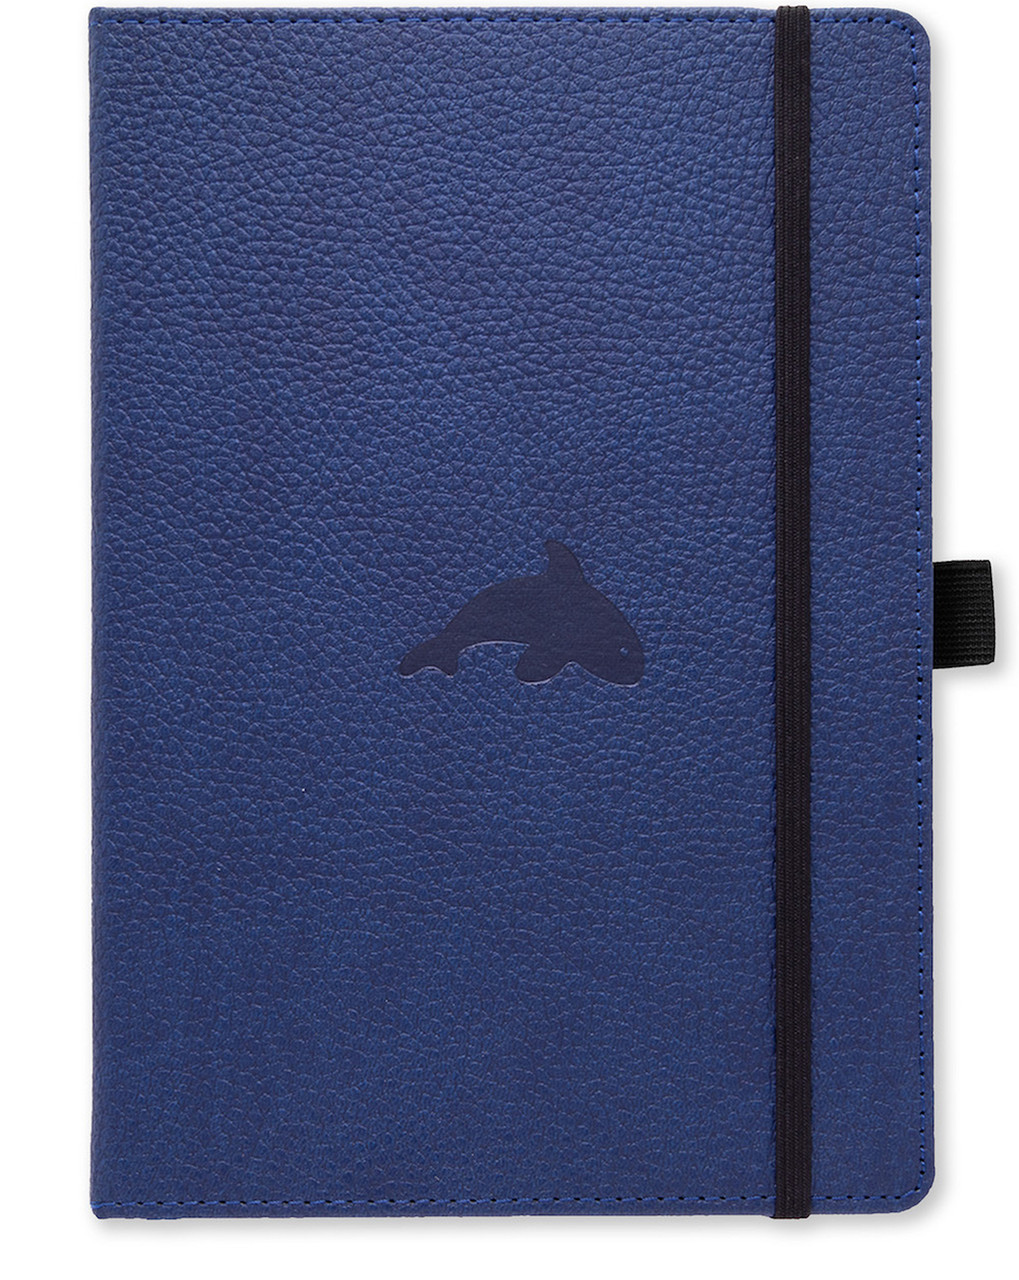 Dingbats Animals Collection journal, Whale